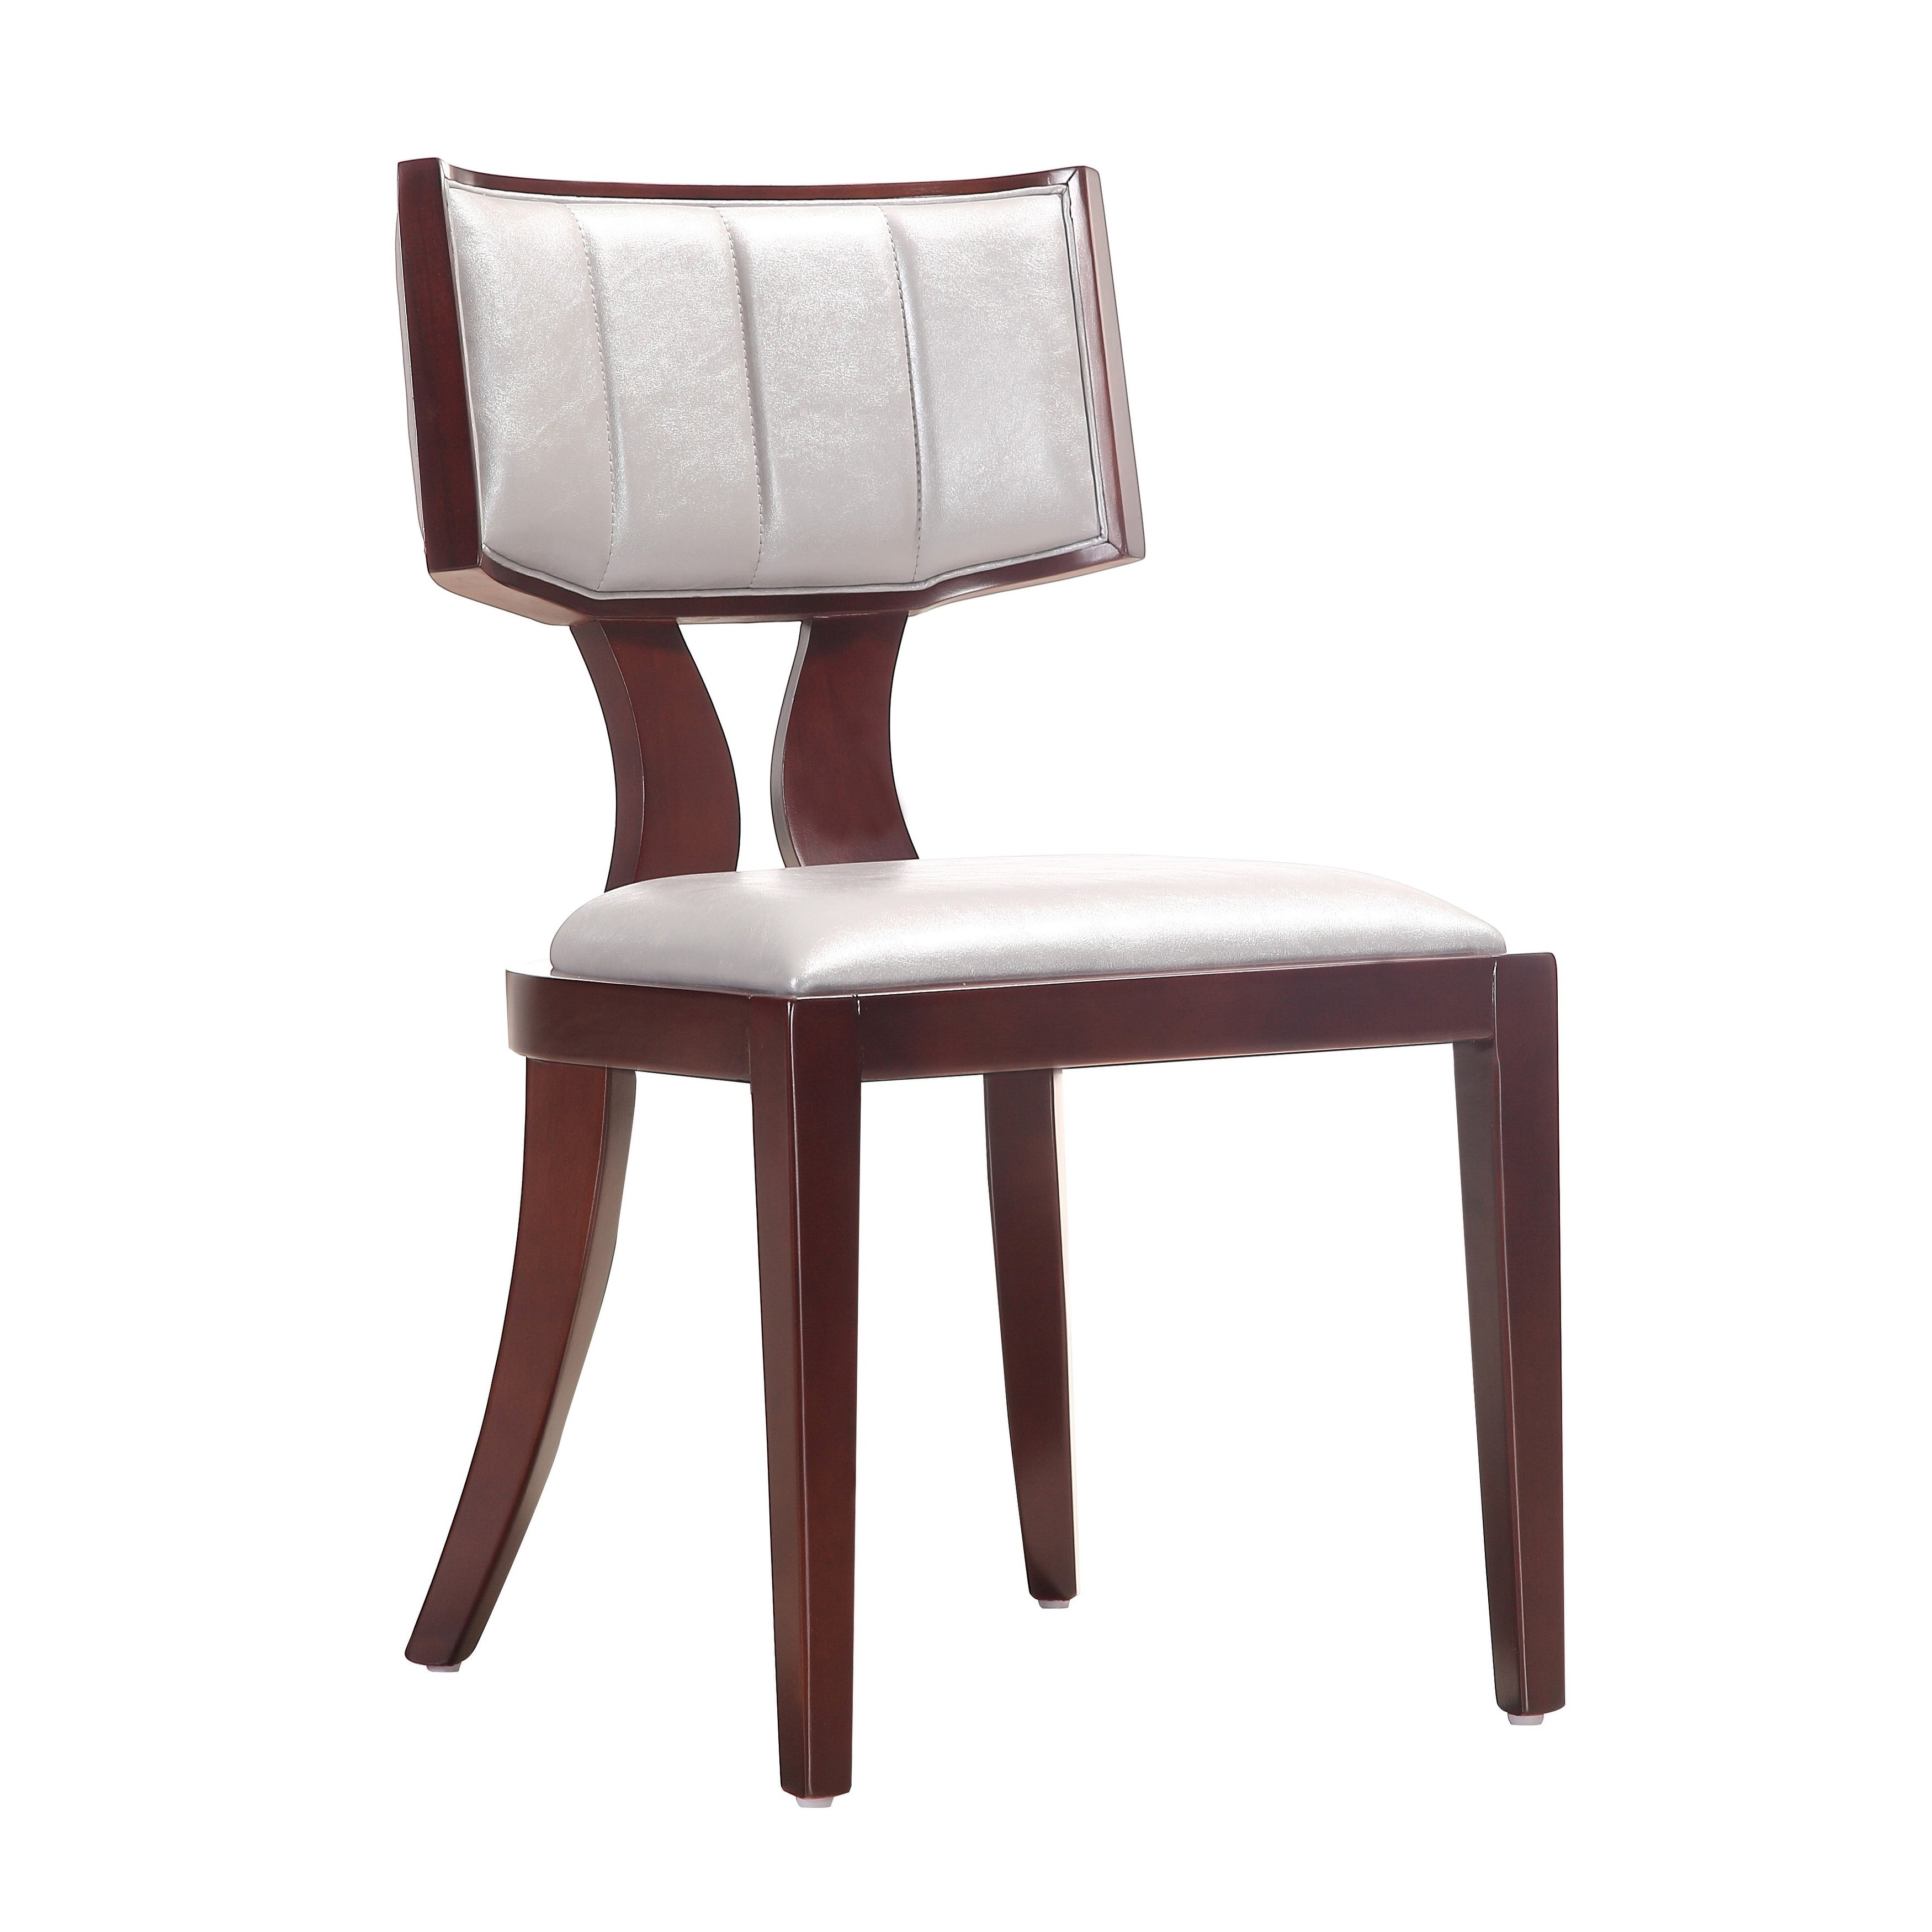 45d36b3cb5 Shop Regency Leatherette Dining Chairs (Set of 2) - Free Shipping Today -  Overstock - 4084531